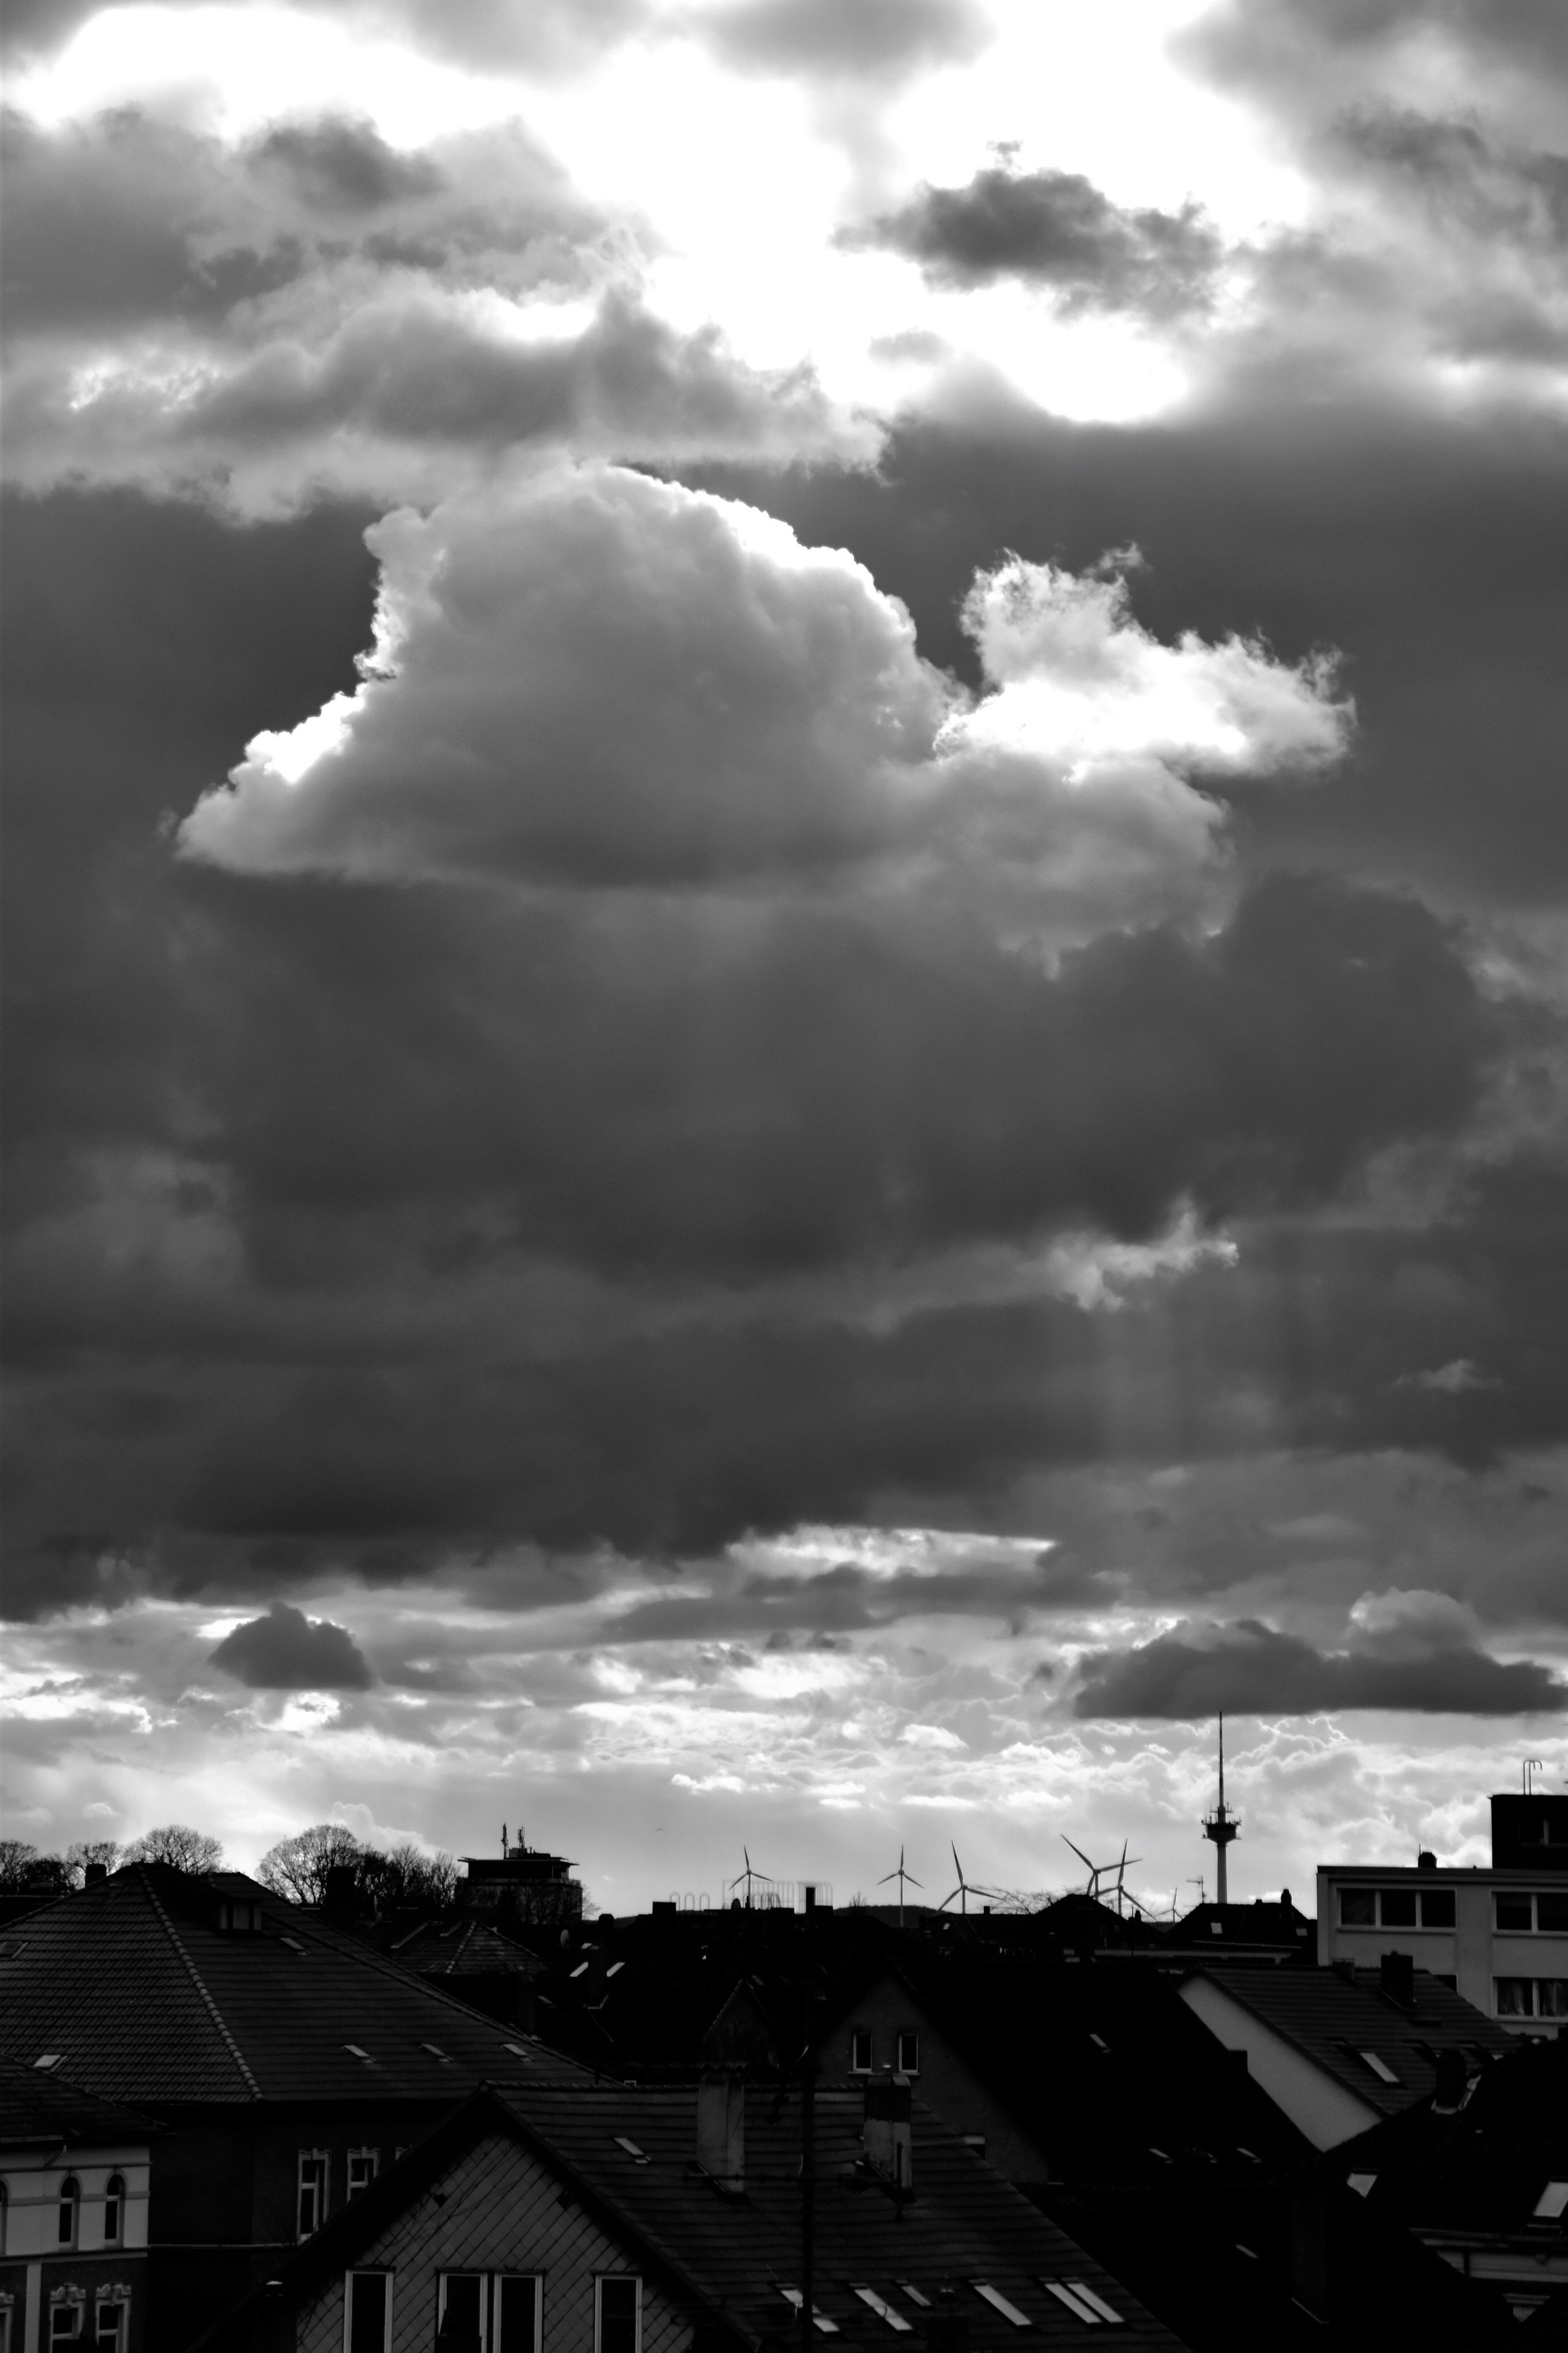 cloud - sky, sky, dramatic sky, storm cloud, cloudscape, outdoors, awe, nature, city, no people, architecture, cityscape, beauty in nature, day